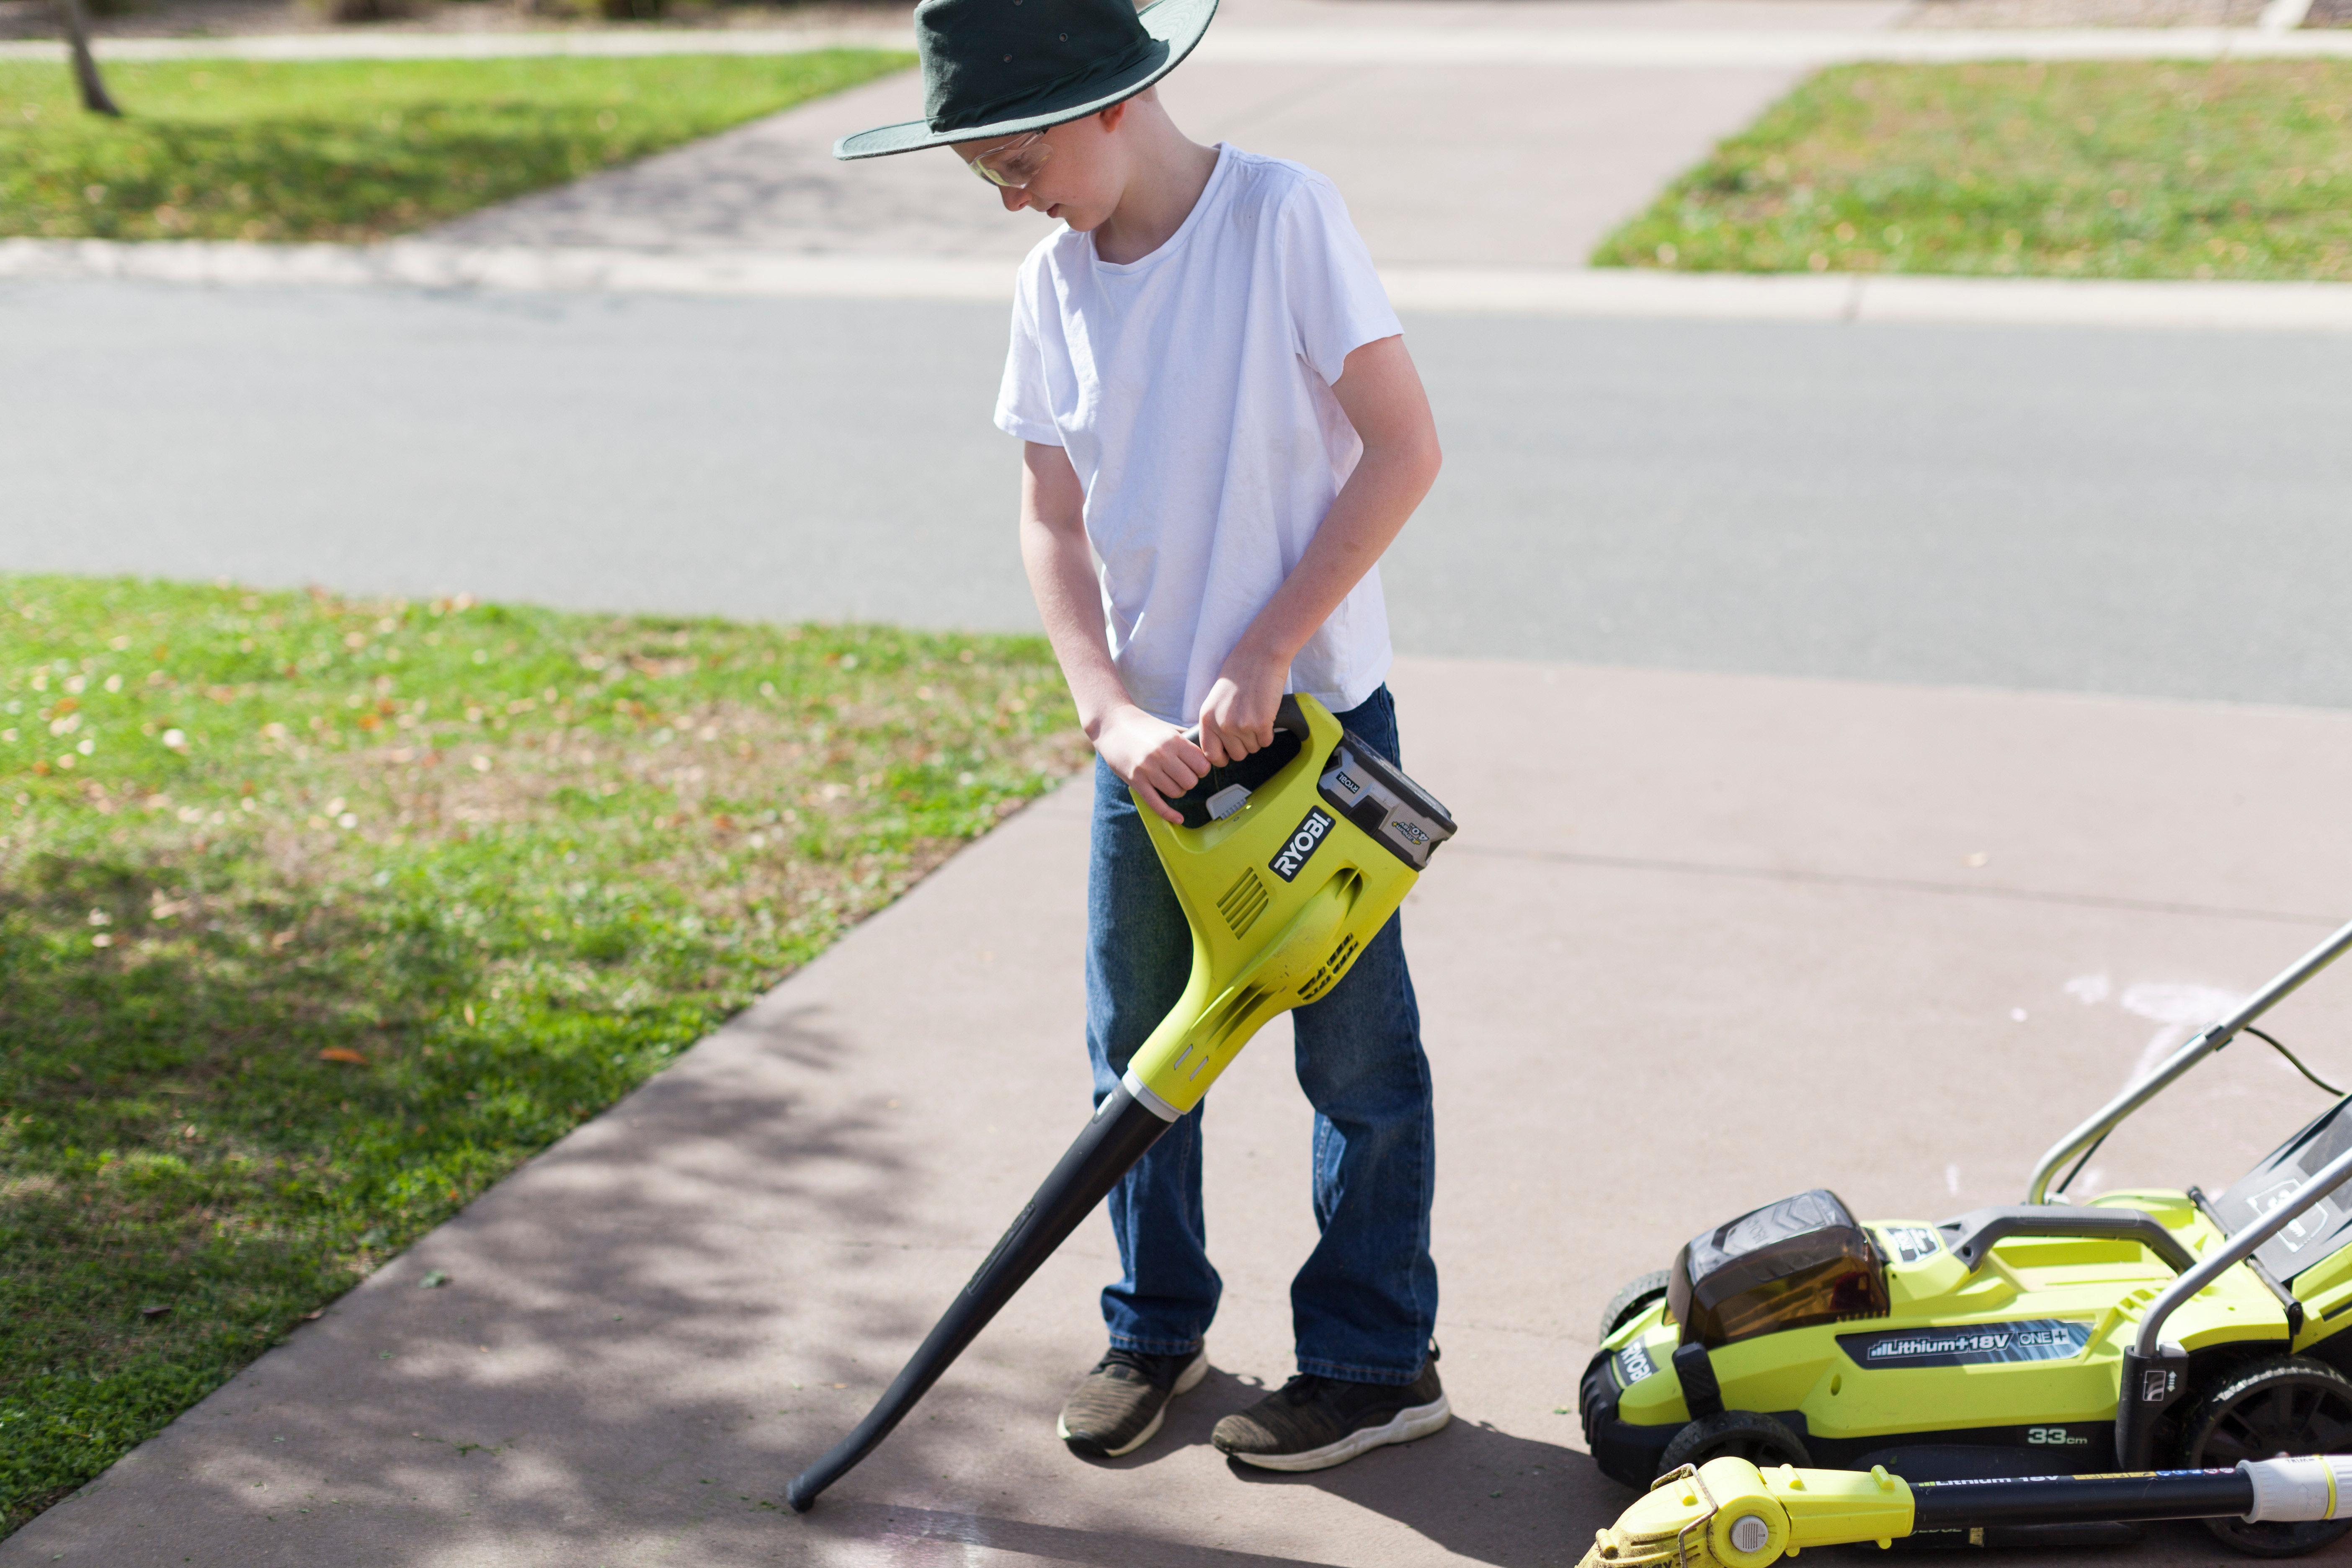 Extra Large Lawn Care